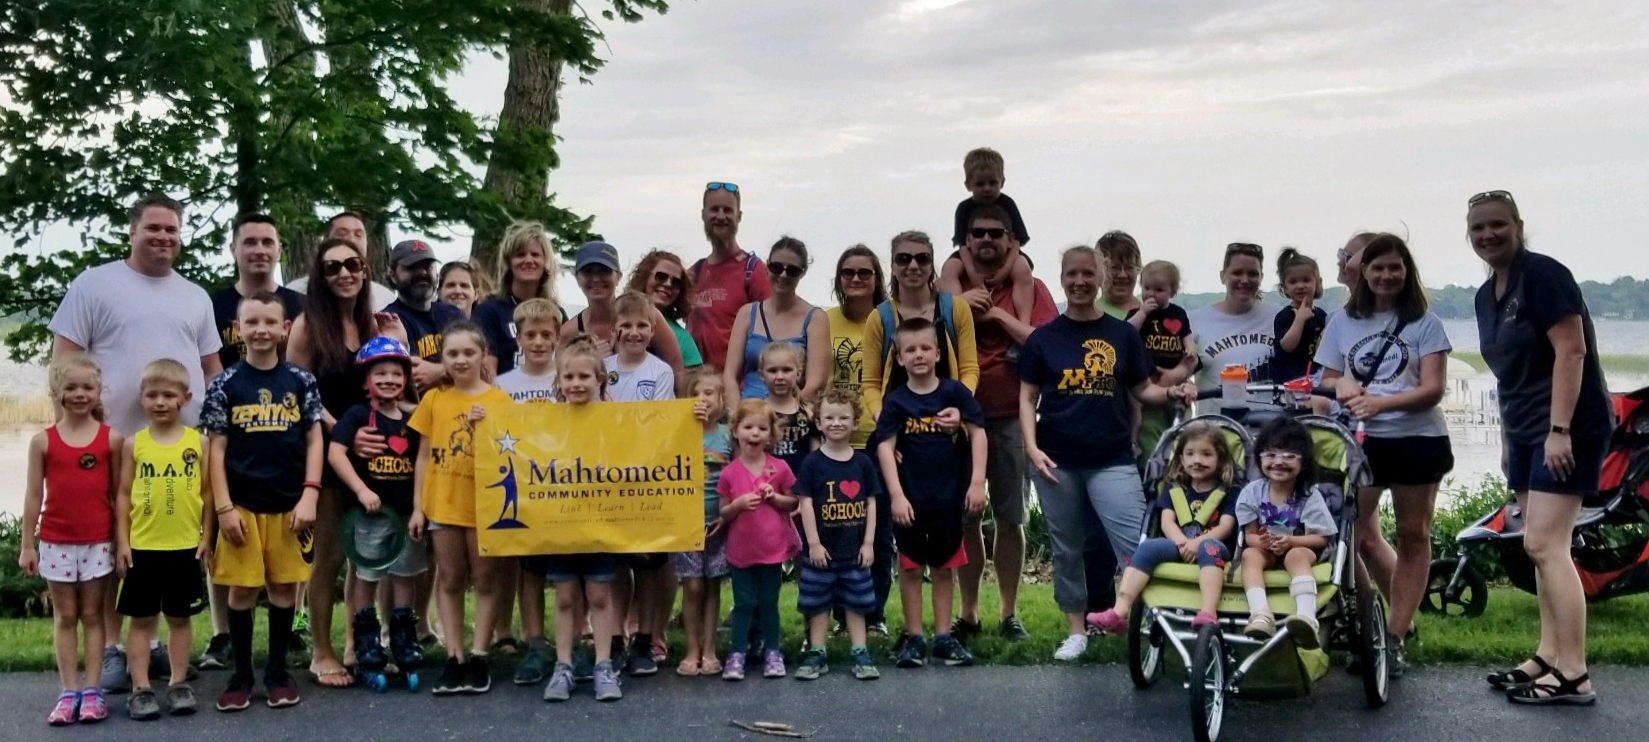 Mahtomedi Early Childhood at Manitou Parade